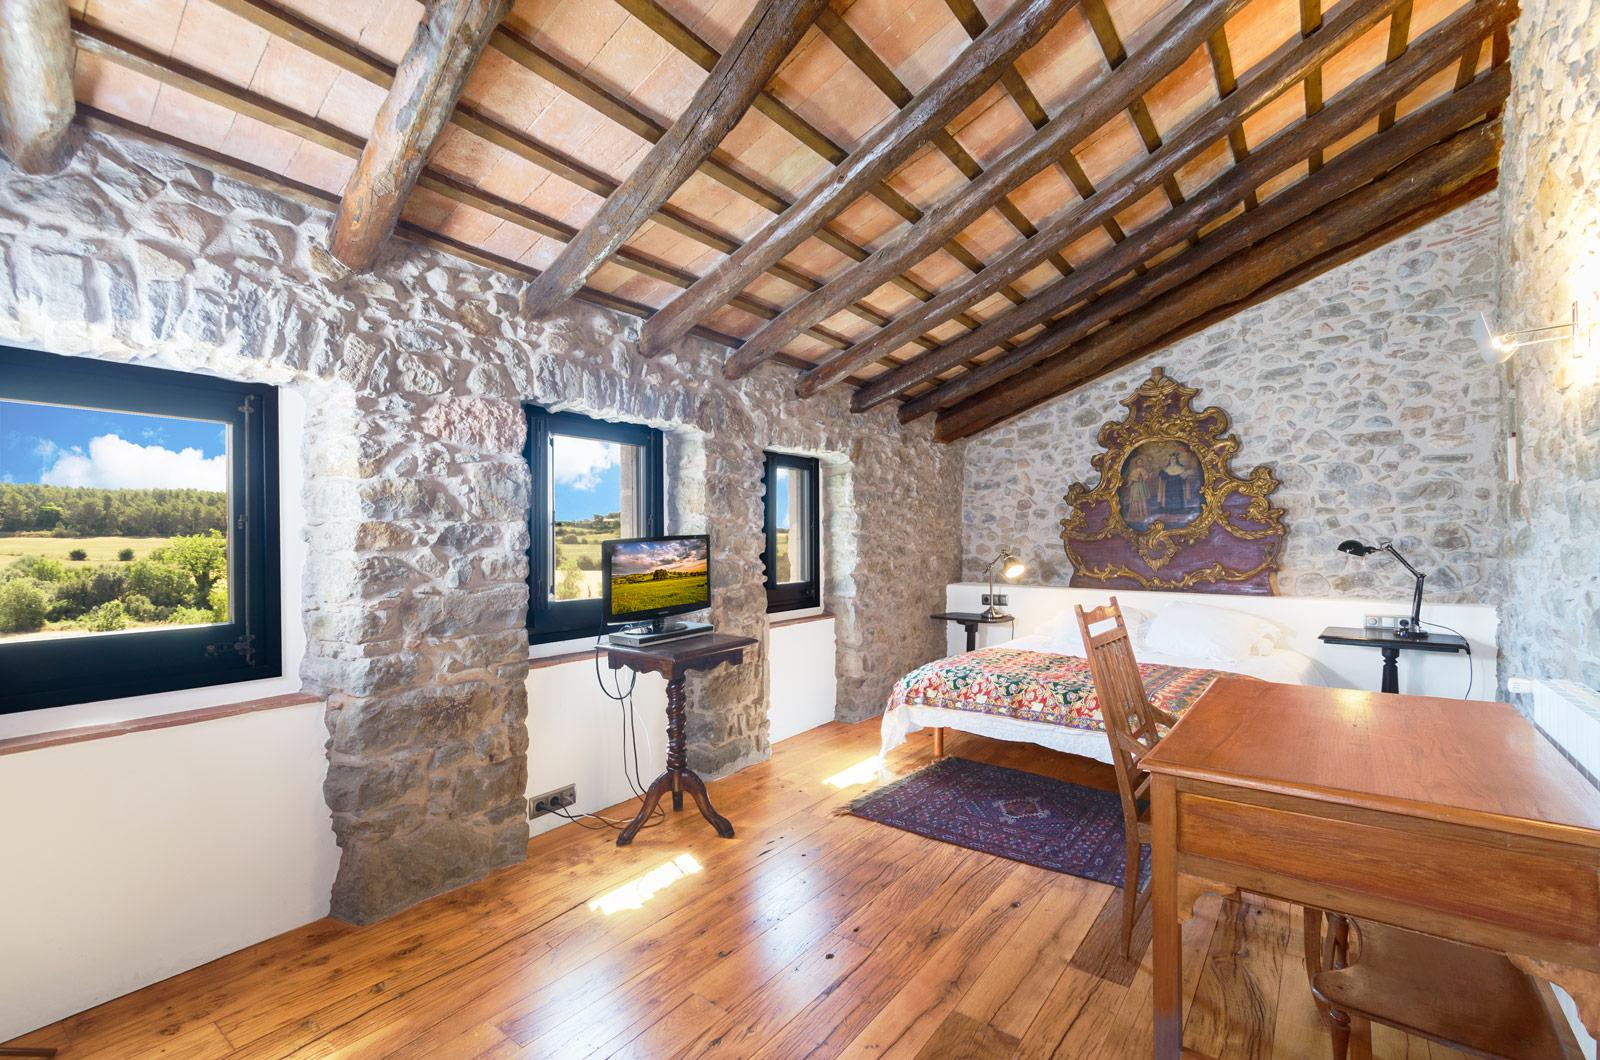 14. Villa for sale in Girona - Traditional Masia, Catalonia country house, for sale in Girona